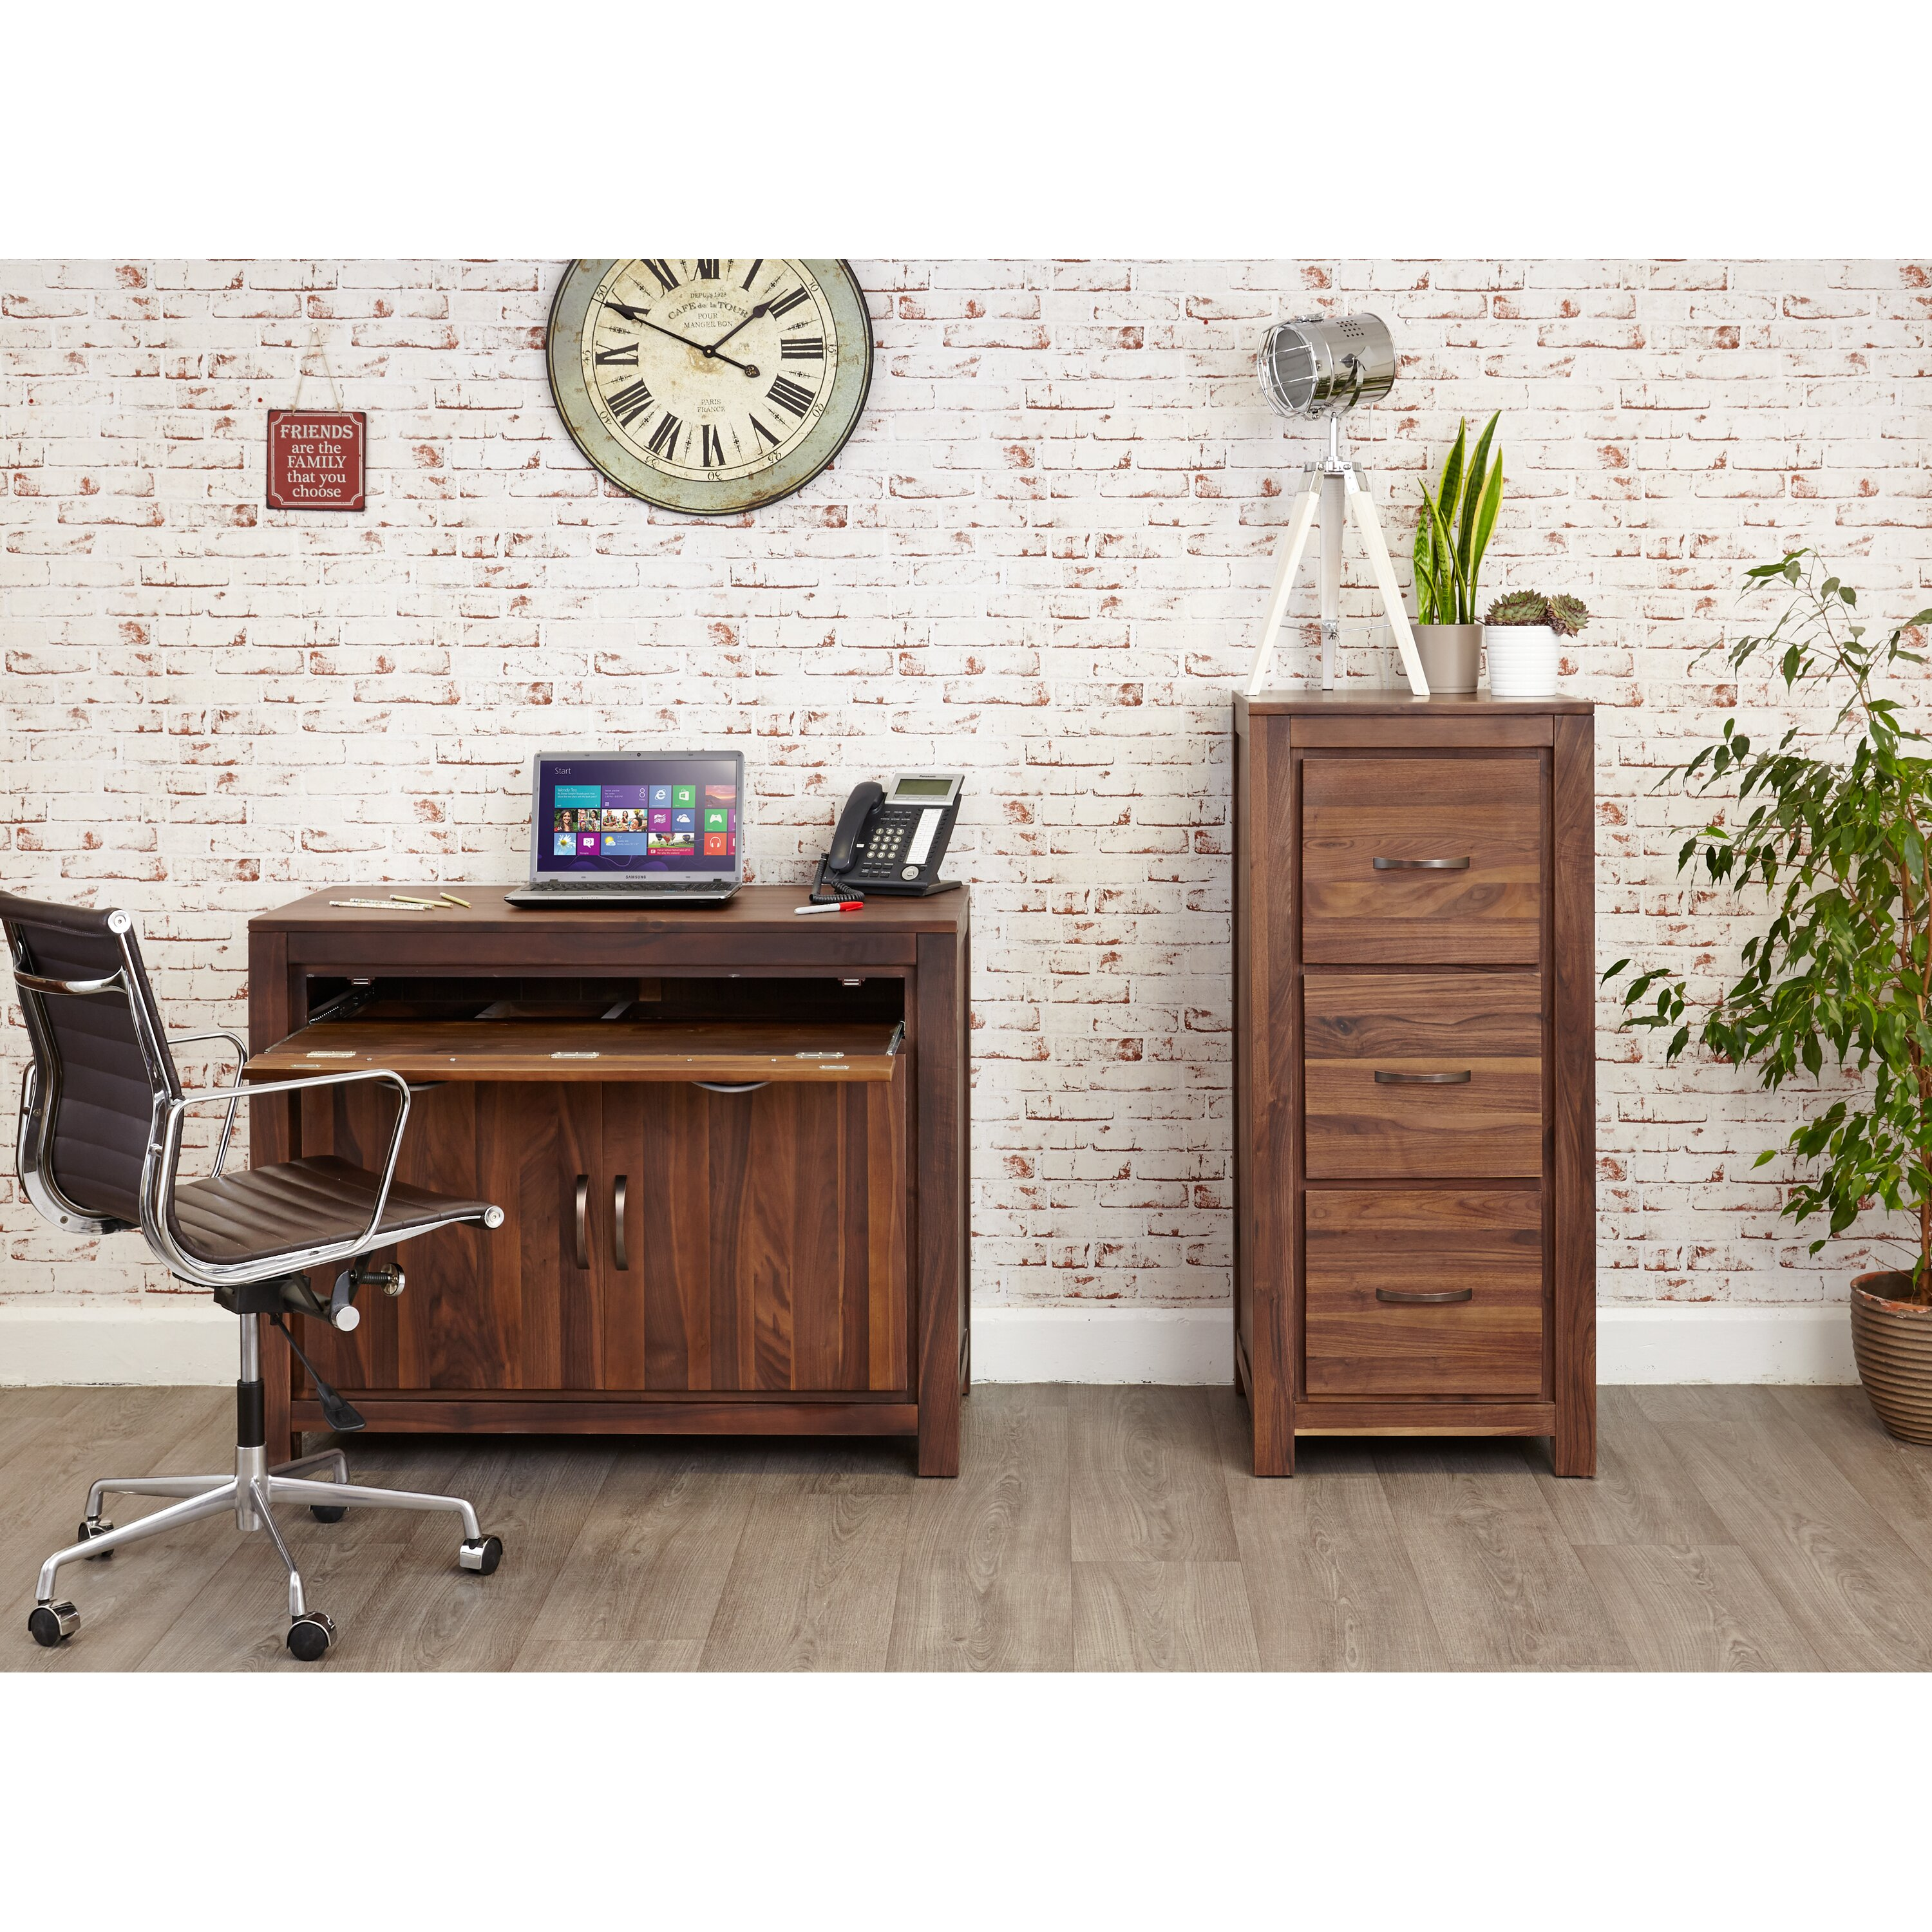 baumhaus hidden home office 2 baumhaus mayan walnut armoire desk with keyboard tray atlas oak hidden home